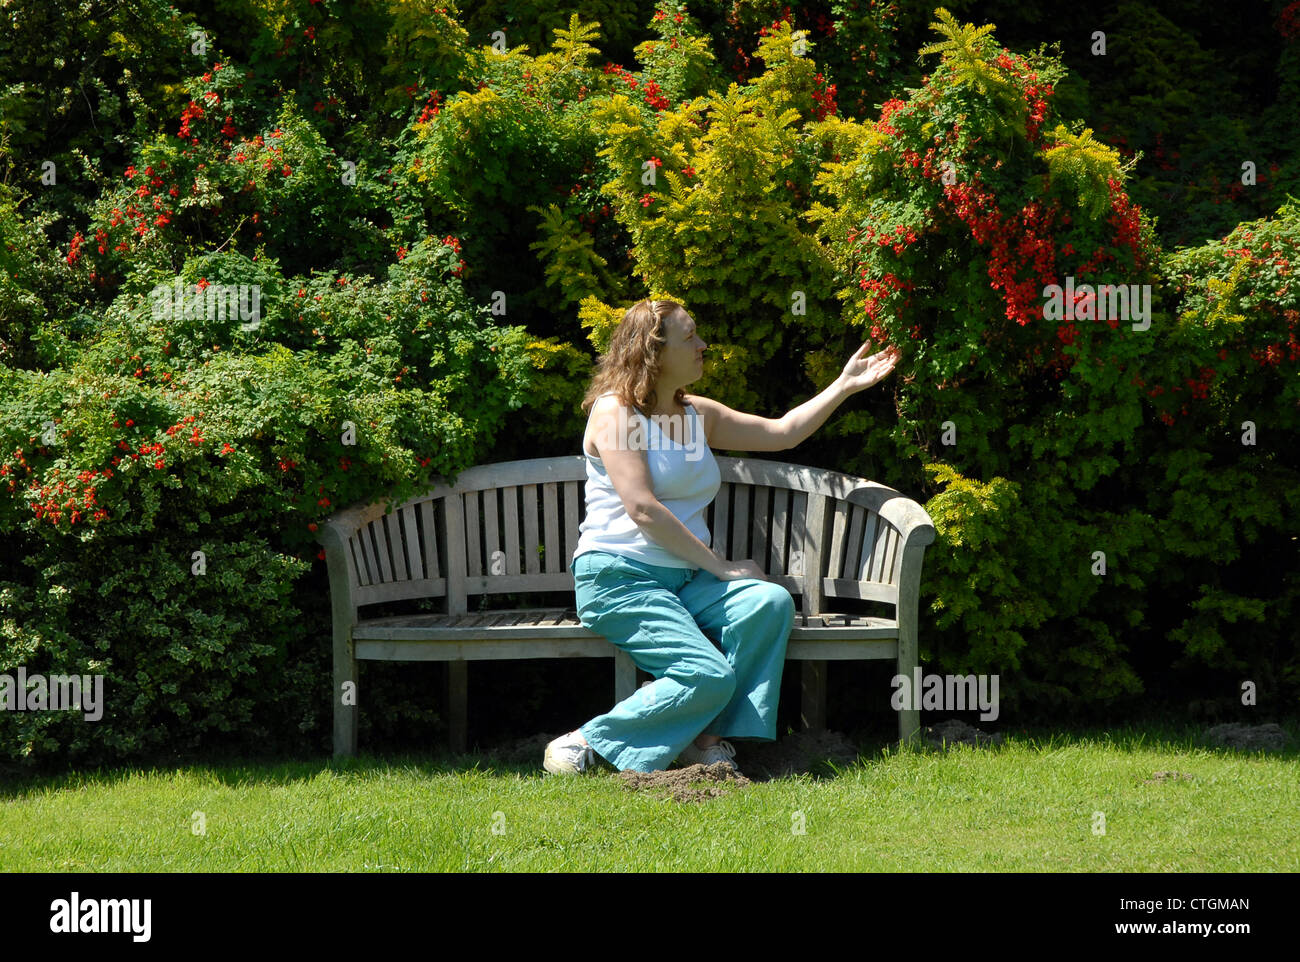 A woman admires flowers at Hergest Croft Gardens in Kington, Herefordshire. - Stock Image